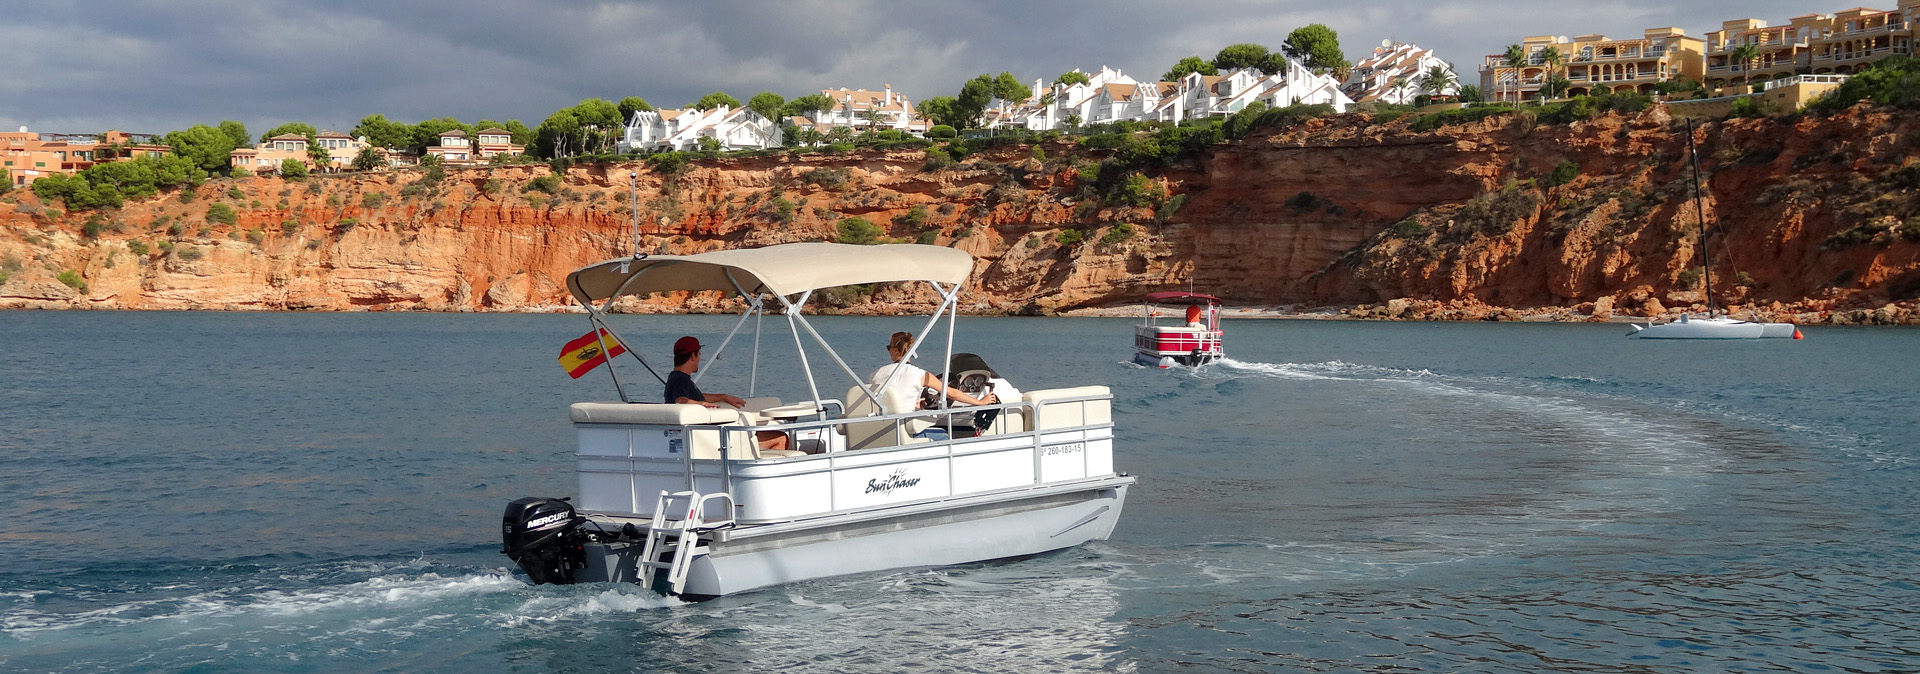 Licence_Free_Boat_Rental_Mallorca_5